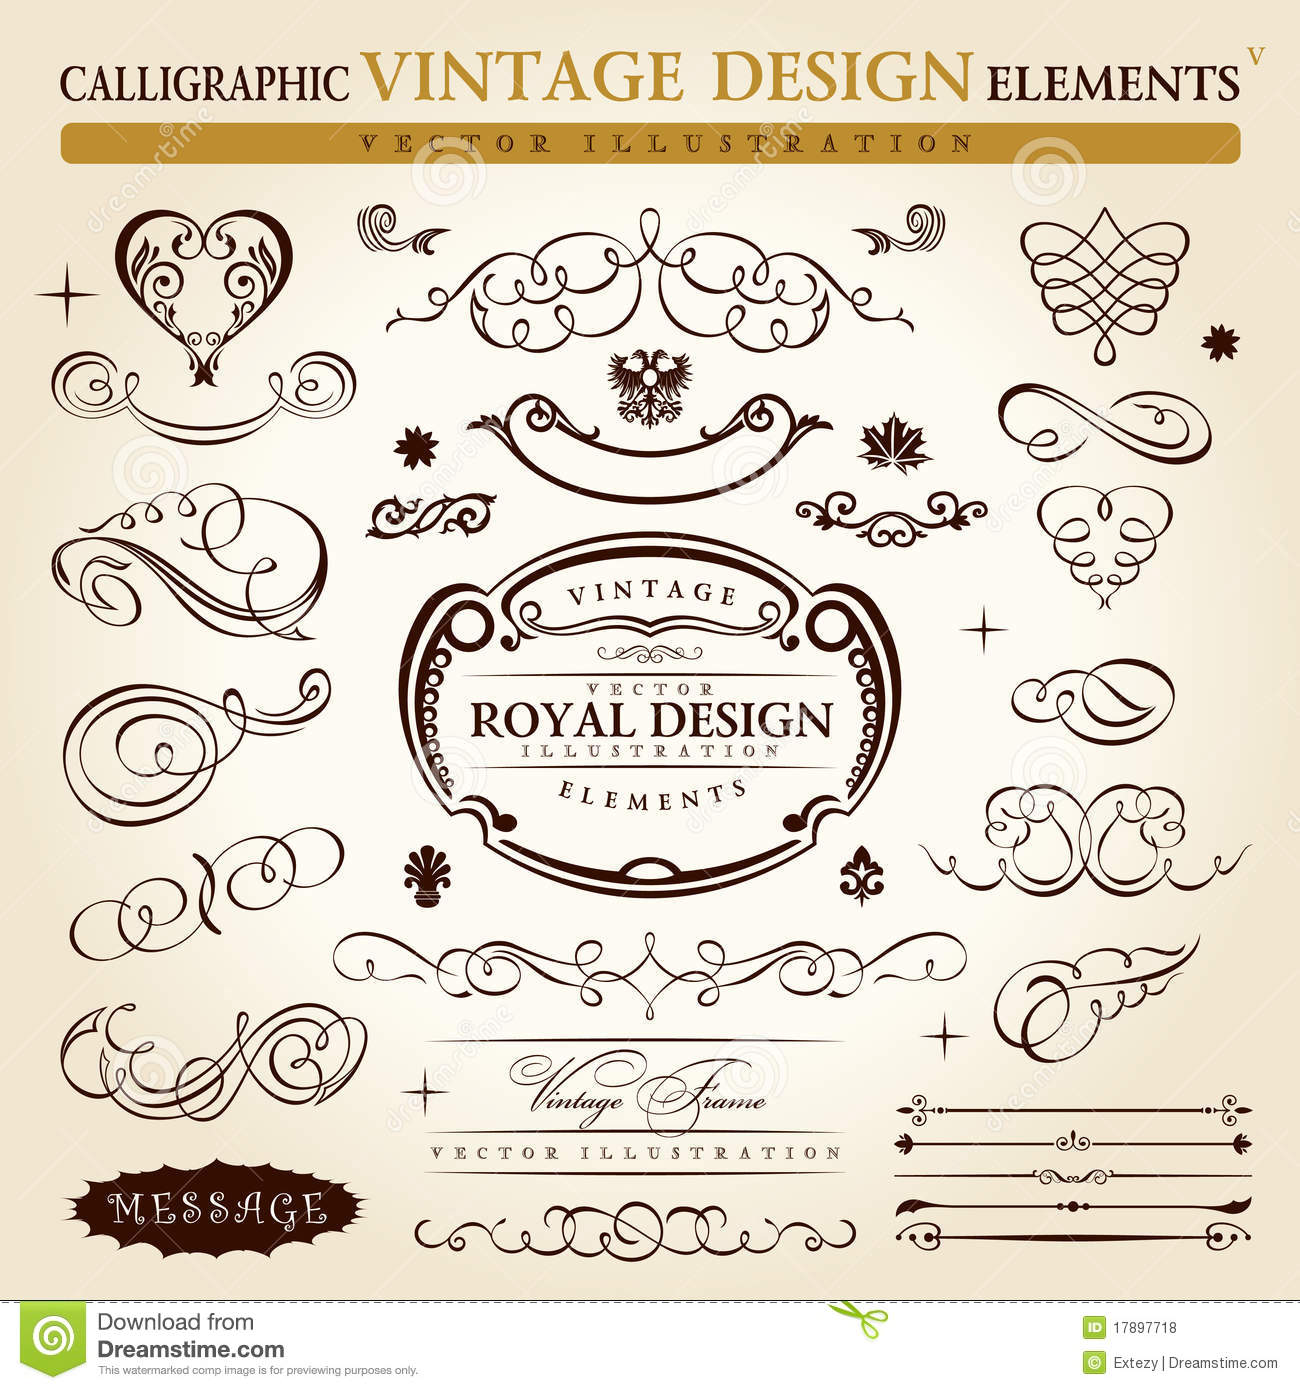 Download free vintage ornaments vintage ornaments and iders - Royalty Free Stock Photo Download Calligraphic Vintage Ornament